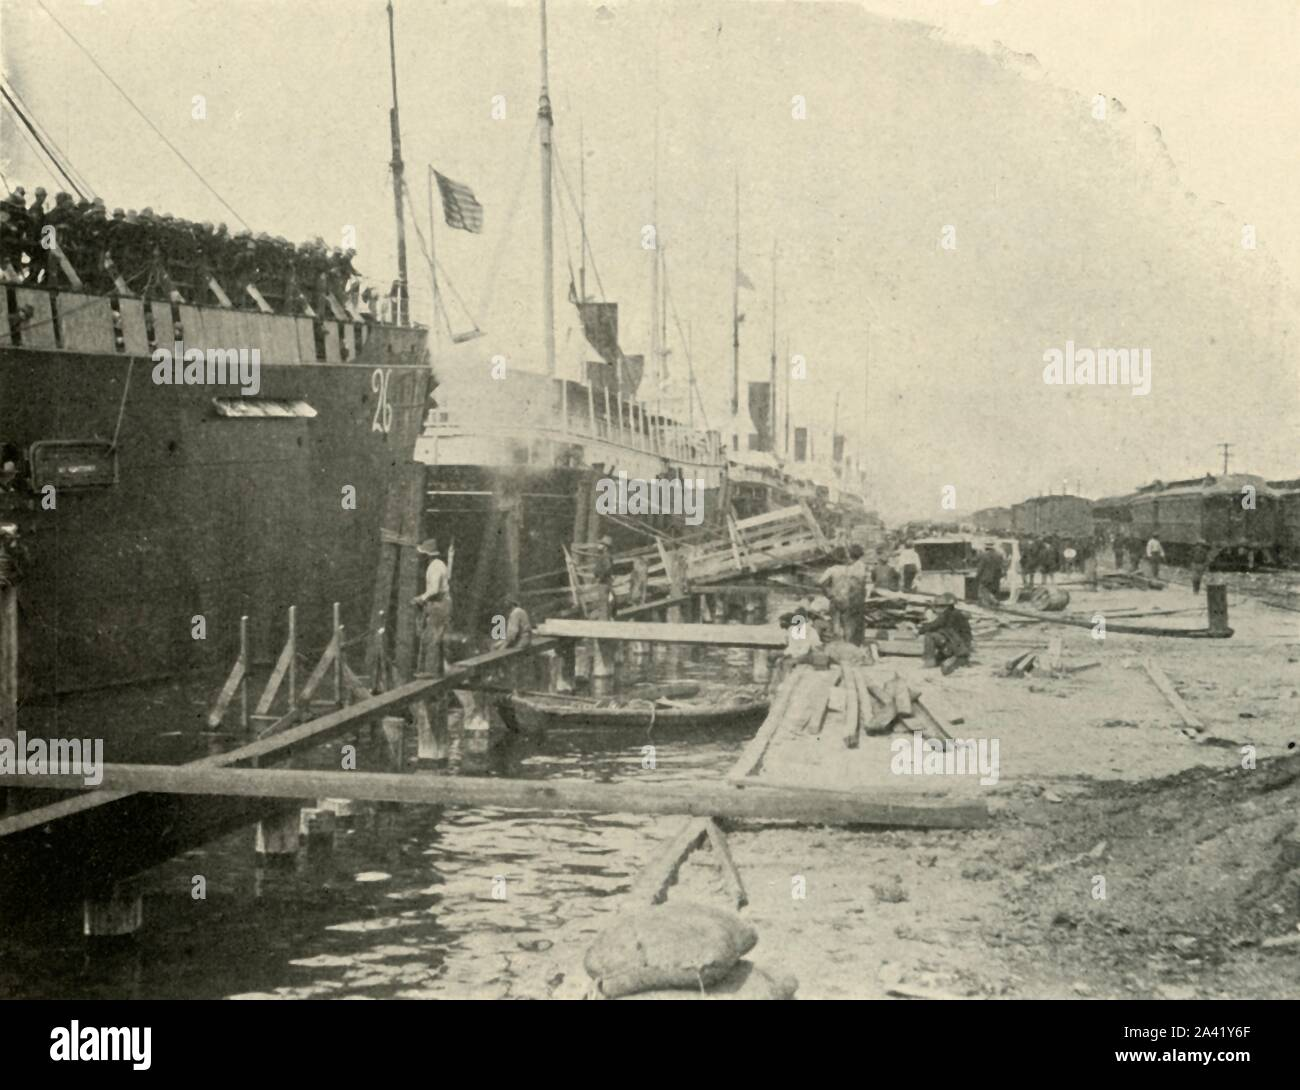 """'At the Dock, June 10th', Spanish-American War, 1898, (1899). Ships in the harbour at Port Tampa, Florida, USA. They were taking American troops to Cuba. From """"The Little I saw of Cuba"""" by Burr McIntosh, with photographs by the author. (In 1898, American actor and journalist William Burr McIntosh went to Cuba to cover the Spanish-American War for """"Leslie's Weekly"""" as a reporter and photographer). [F. Tennyson Neely, London & New York, 1899] Stock Photo"""